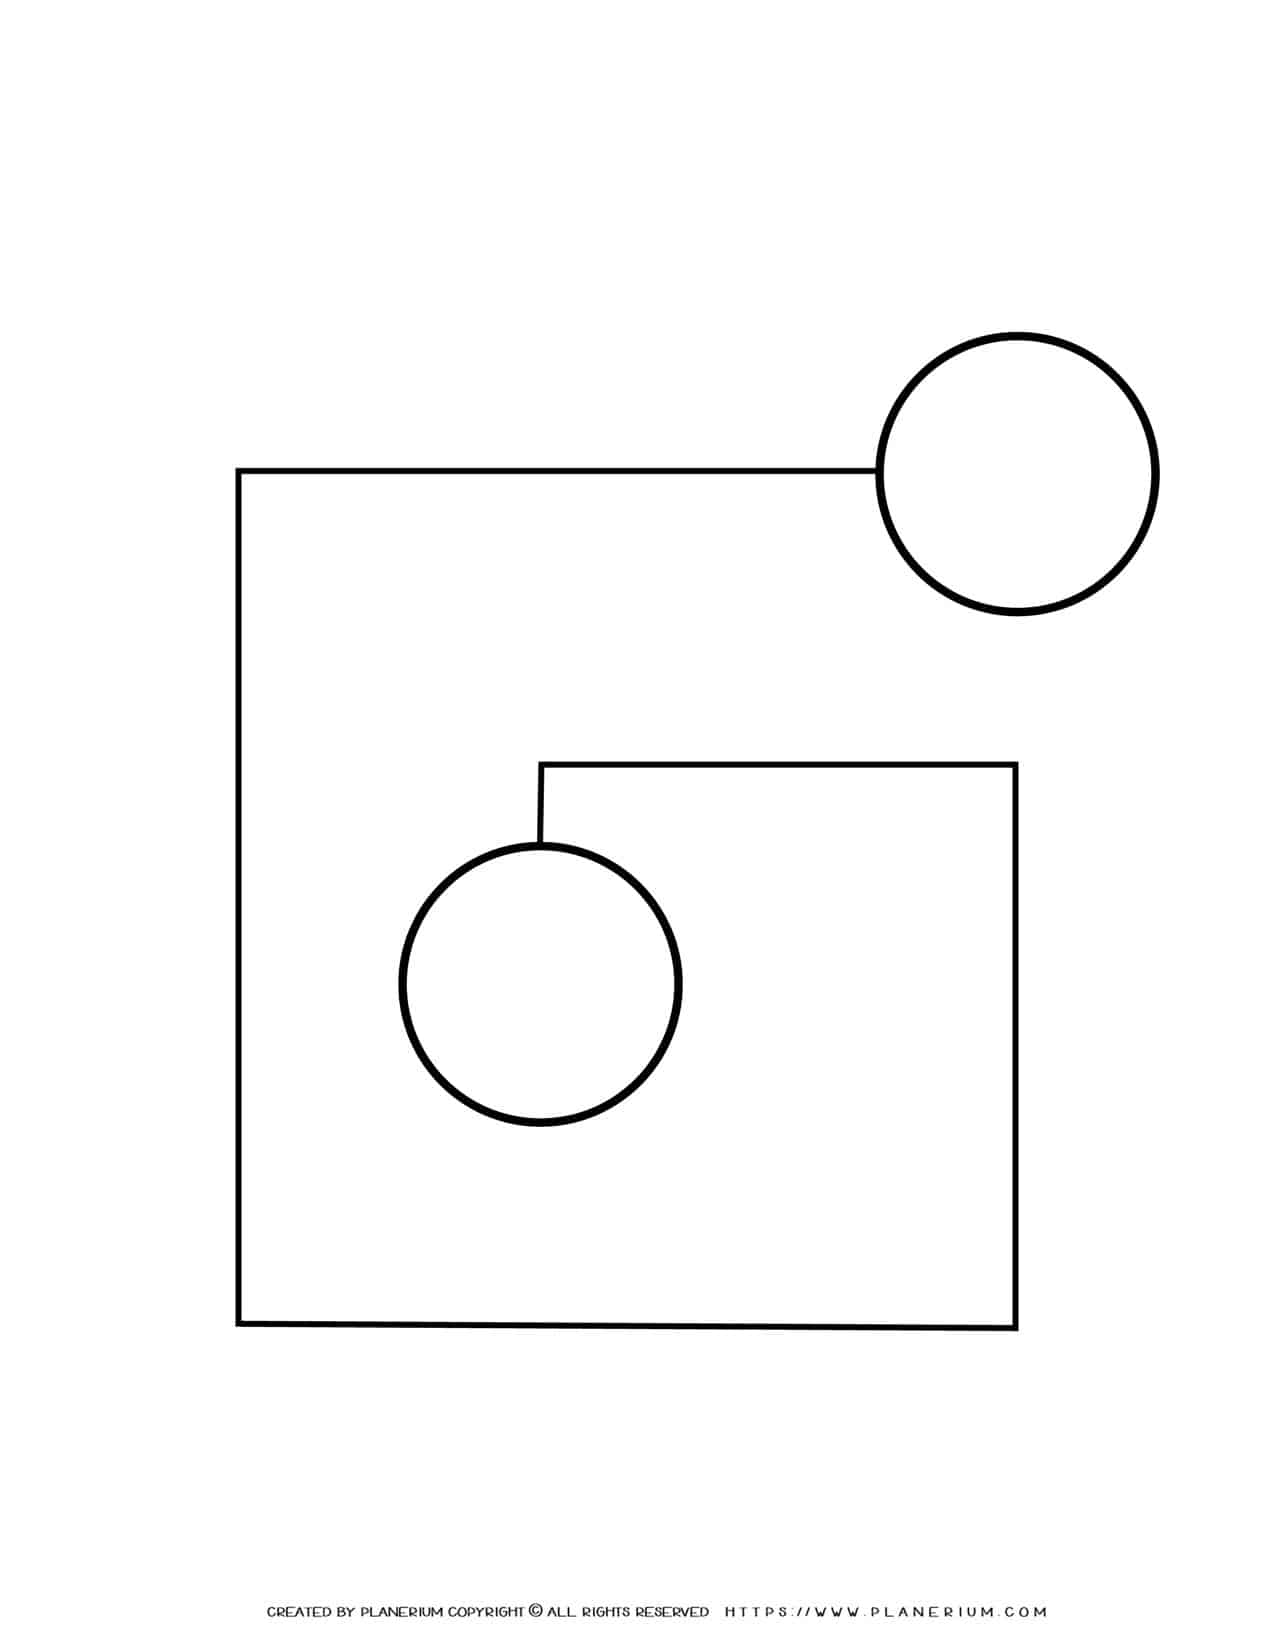 Sequence Chart Template - Two Circles on a Spiral Shape   Planerium